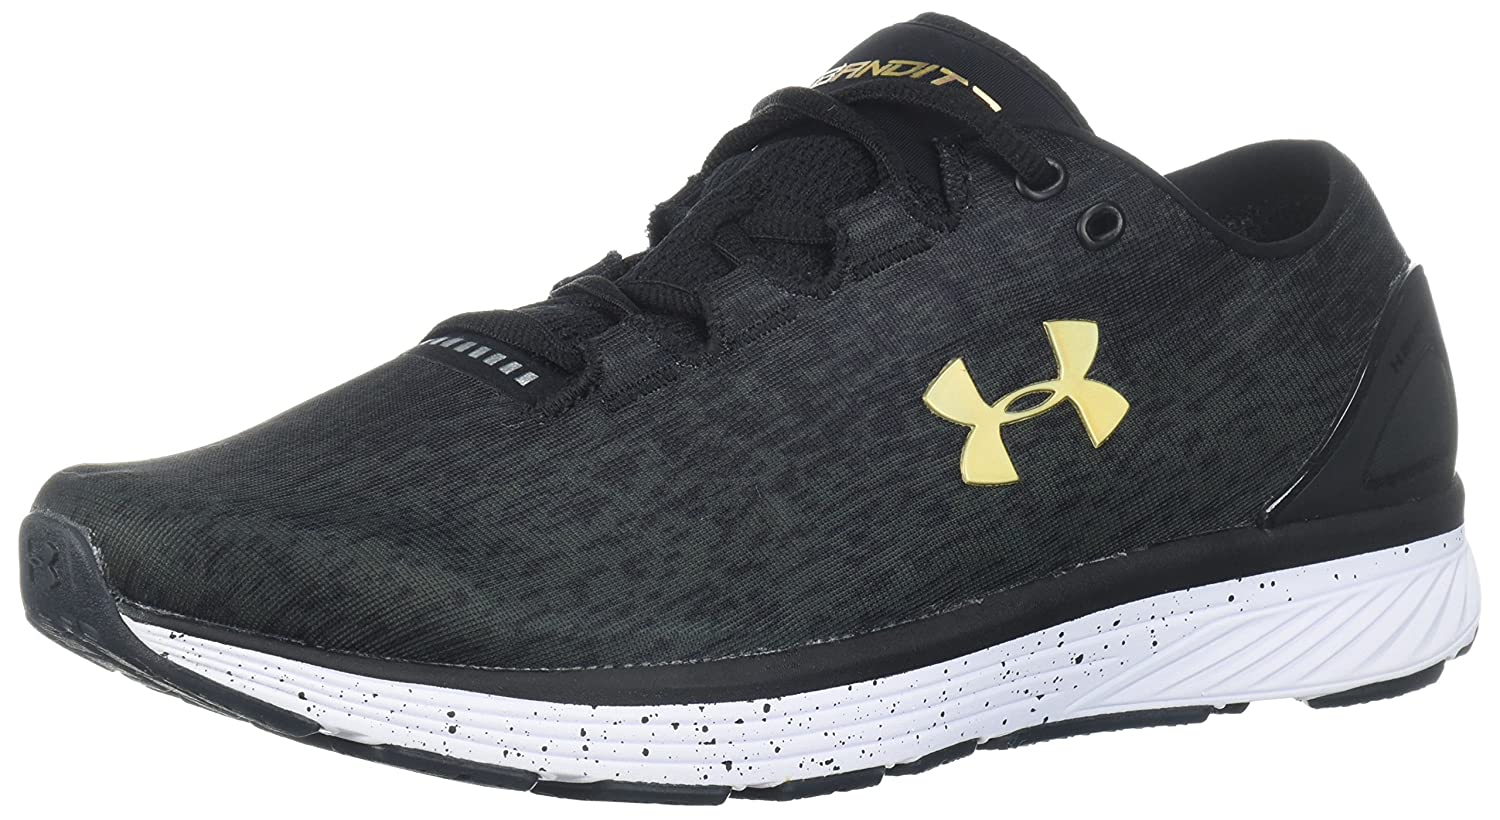 check out 796d5 f93bb Under Armour Men's Laufschuh Ua Charged Bandit 3 Ombre Fitness Shoes